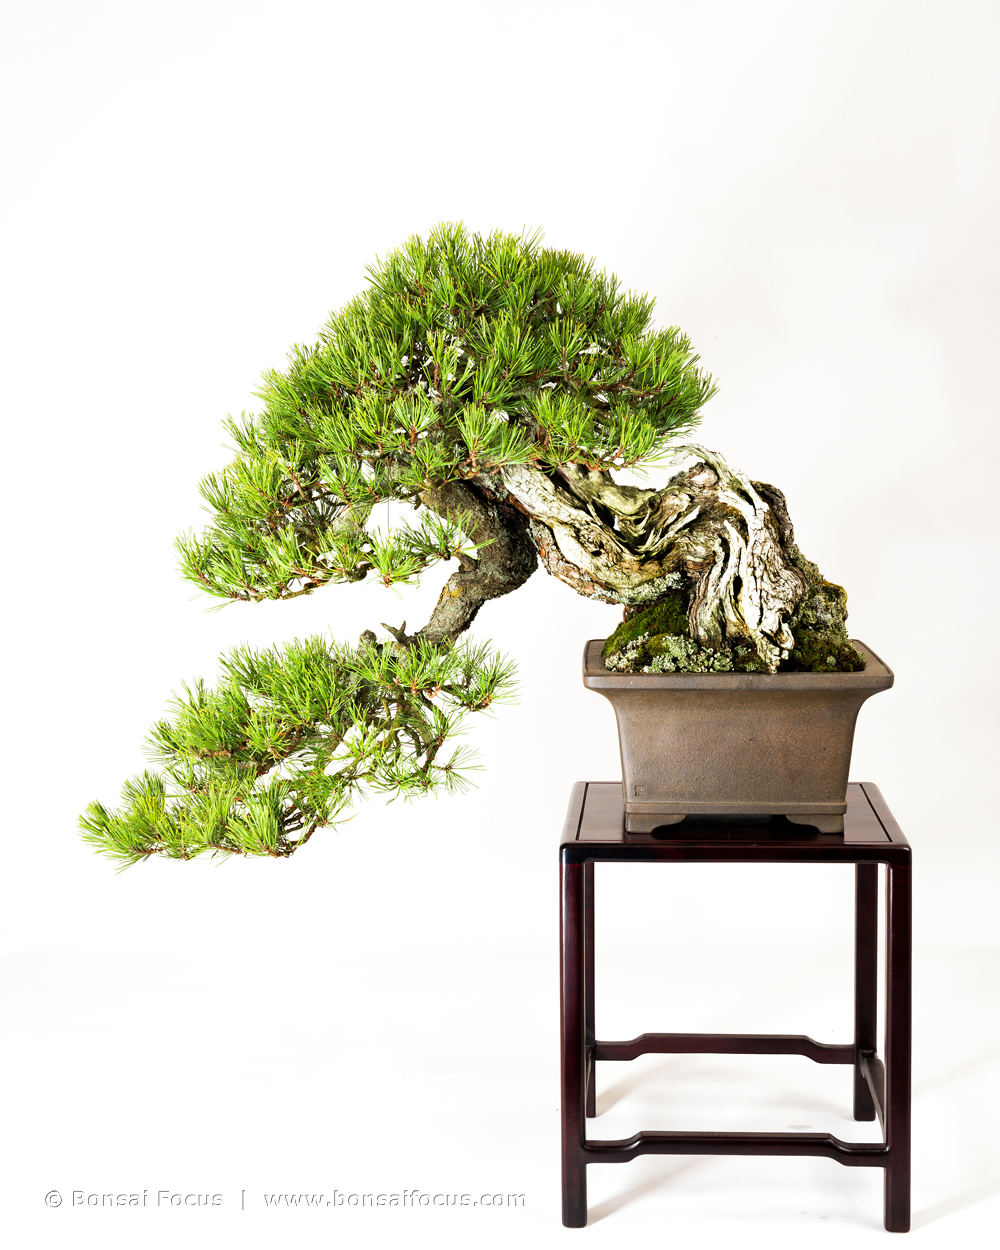 Han Kengai Half Cascade Style Bonsai Today